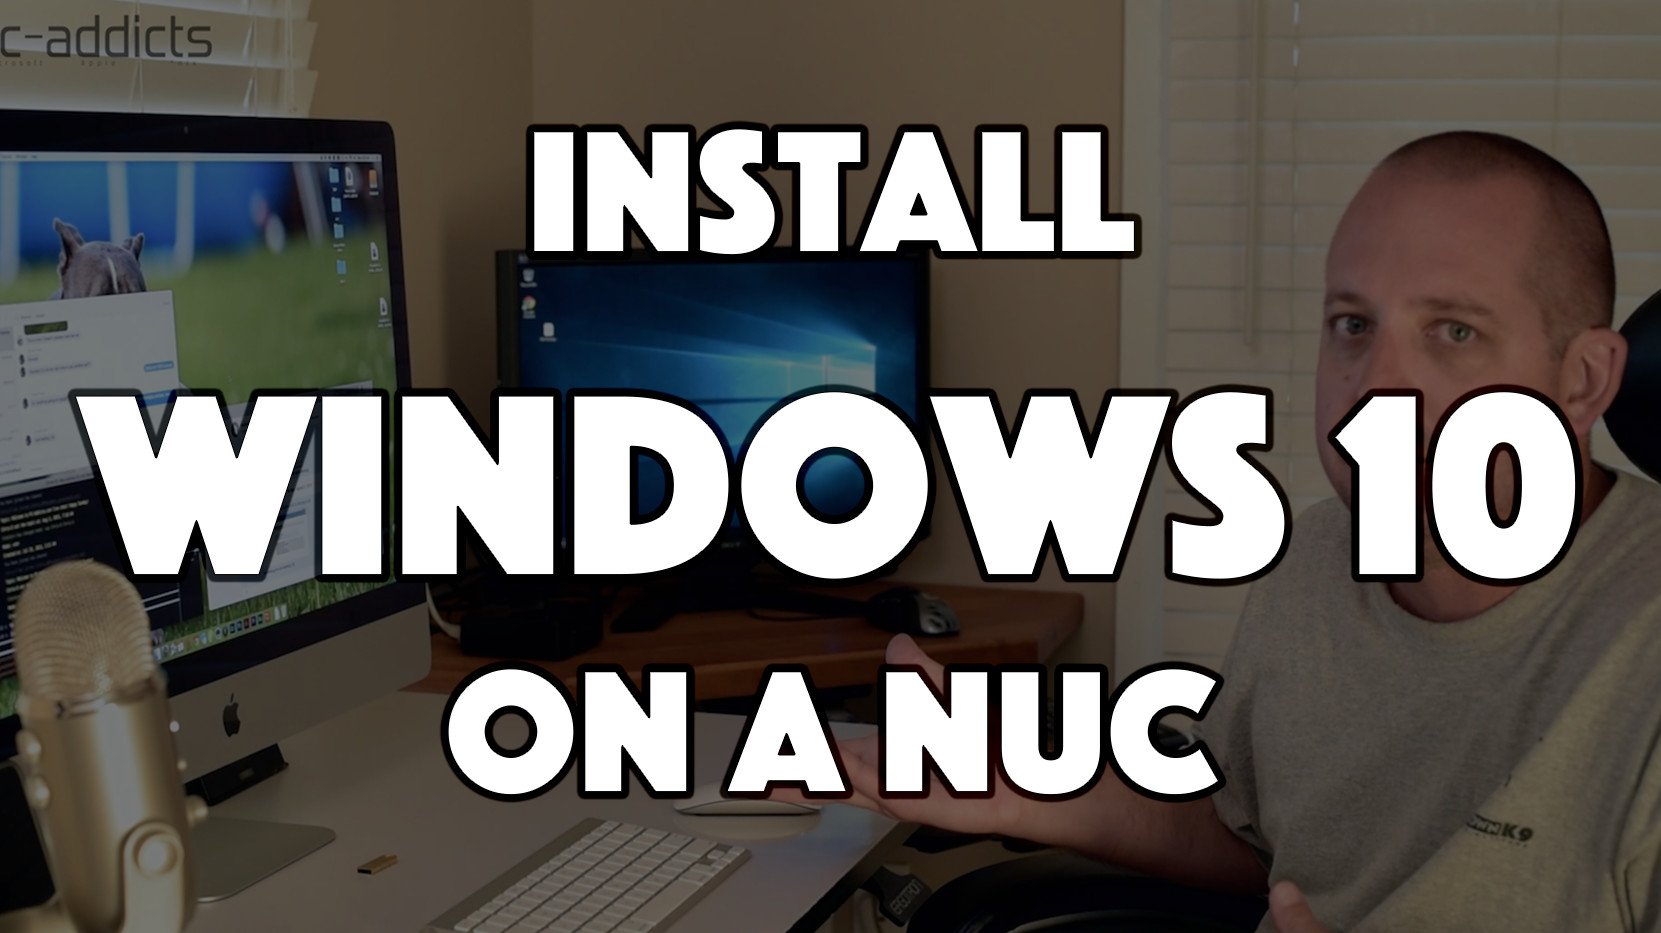 Install Windows 10 on NUC